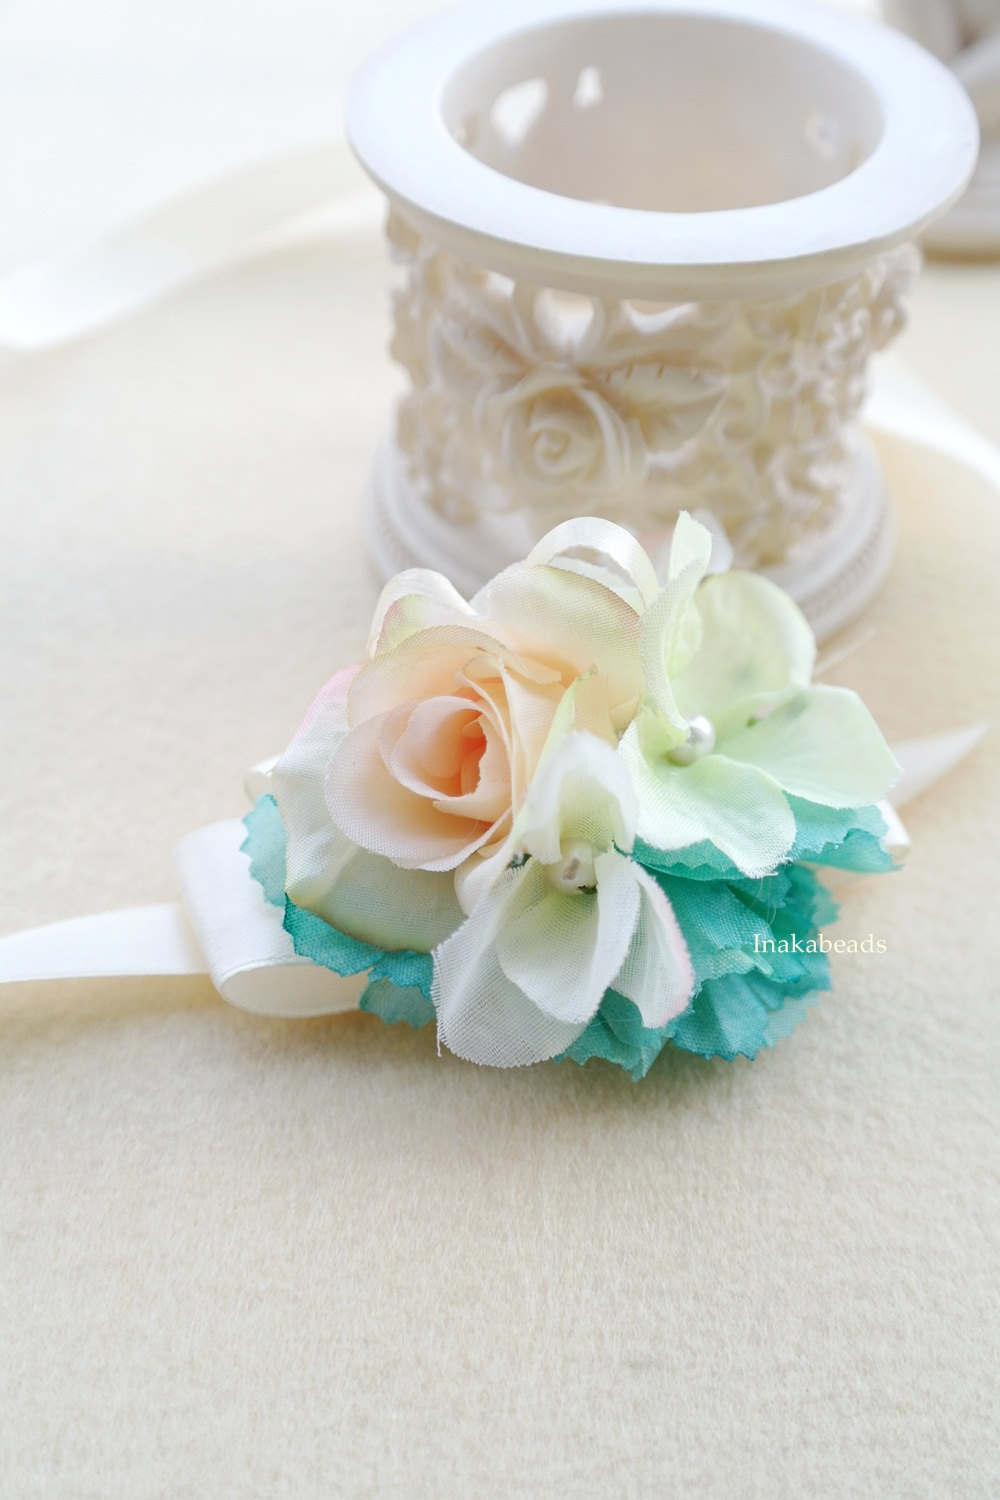 materials champagne artificial rose flower mint green u0026 light green flowers faux pearls u0026 light yellow ribbons